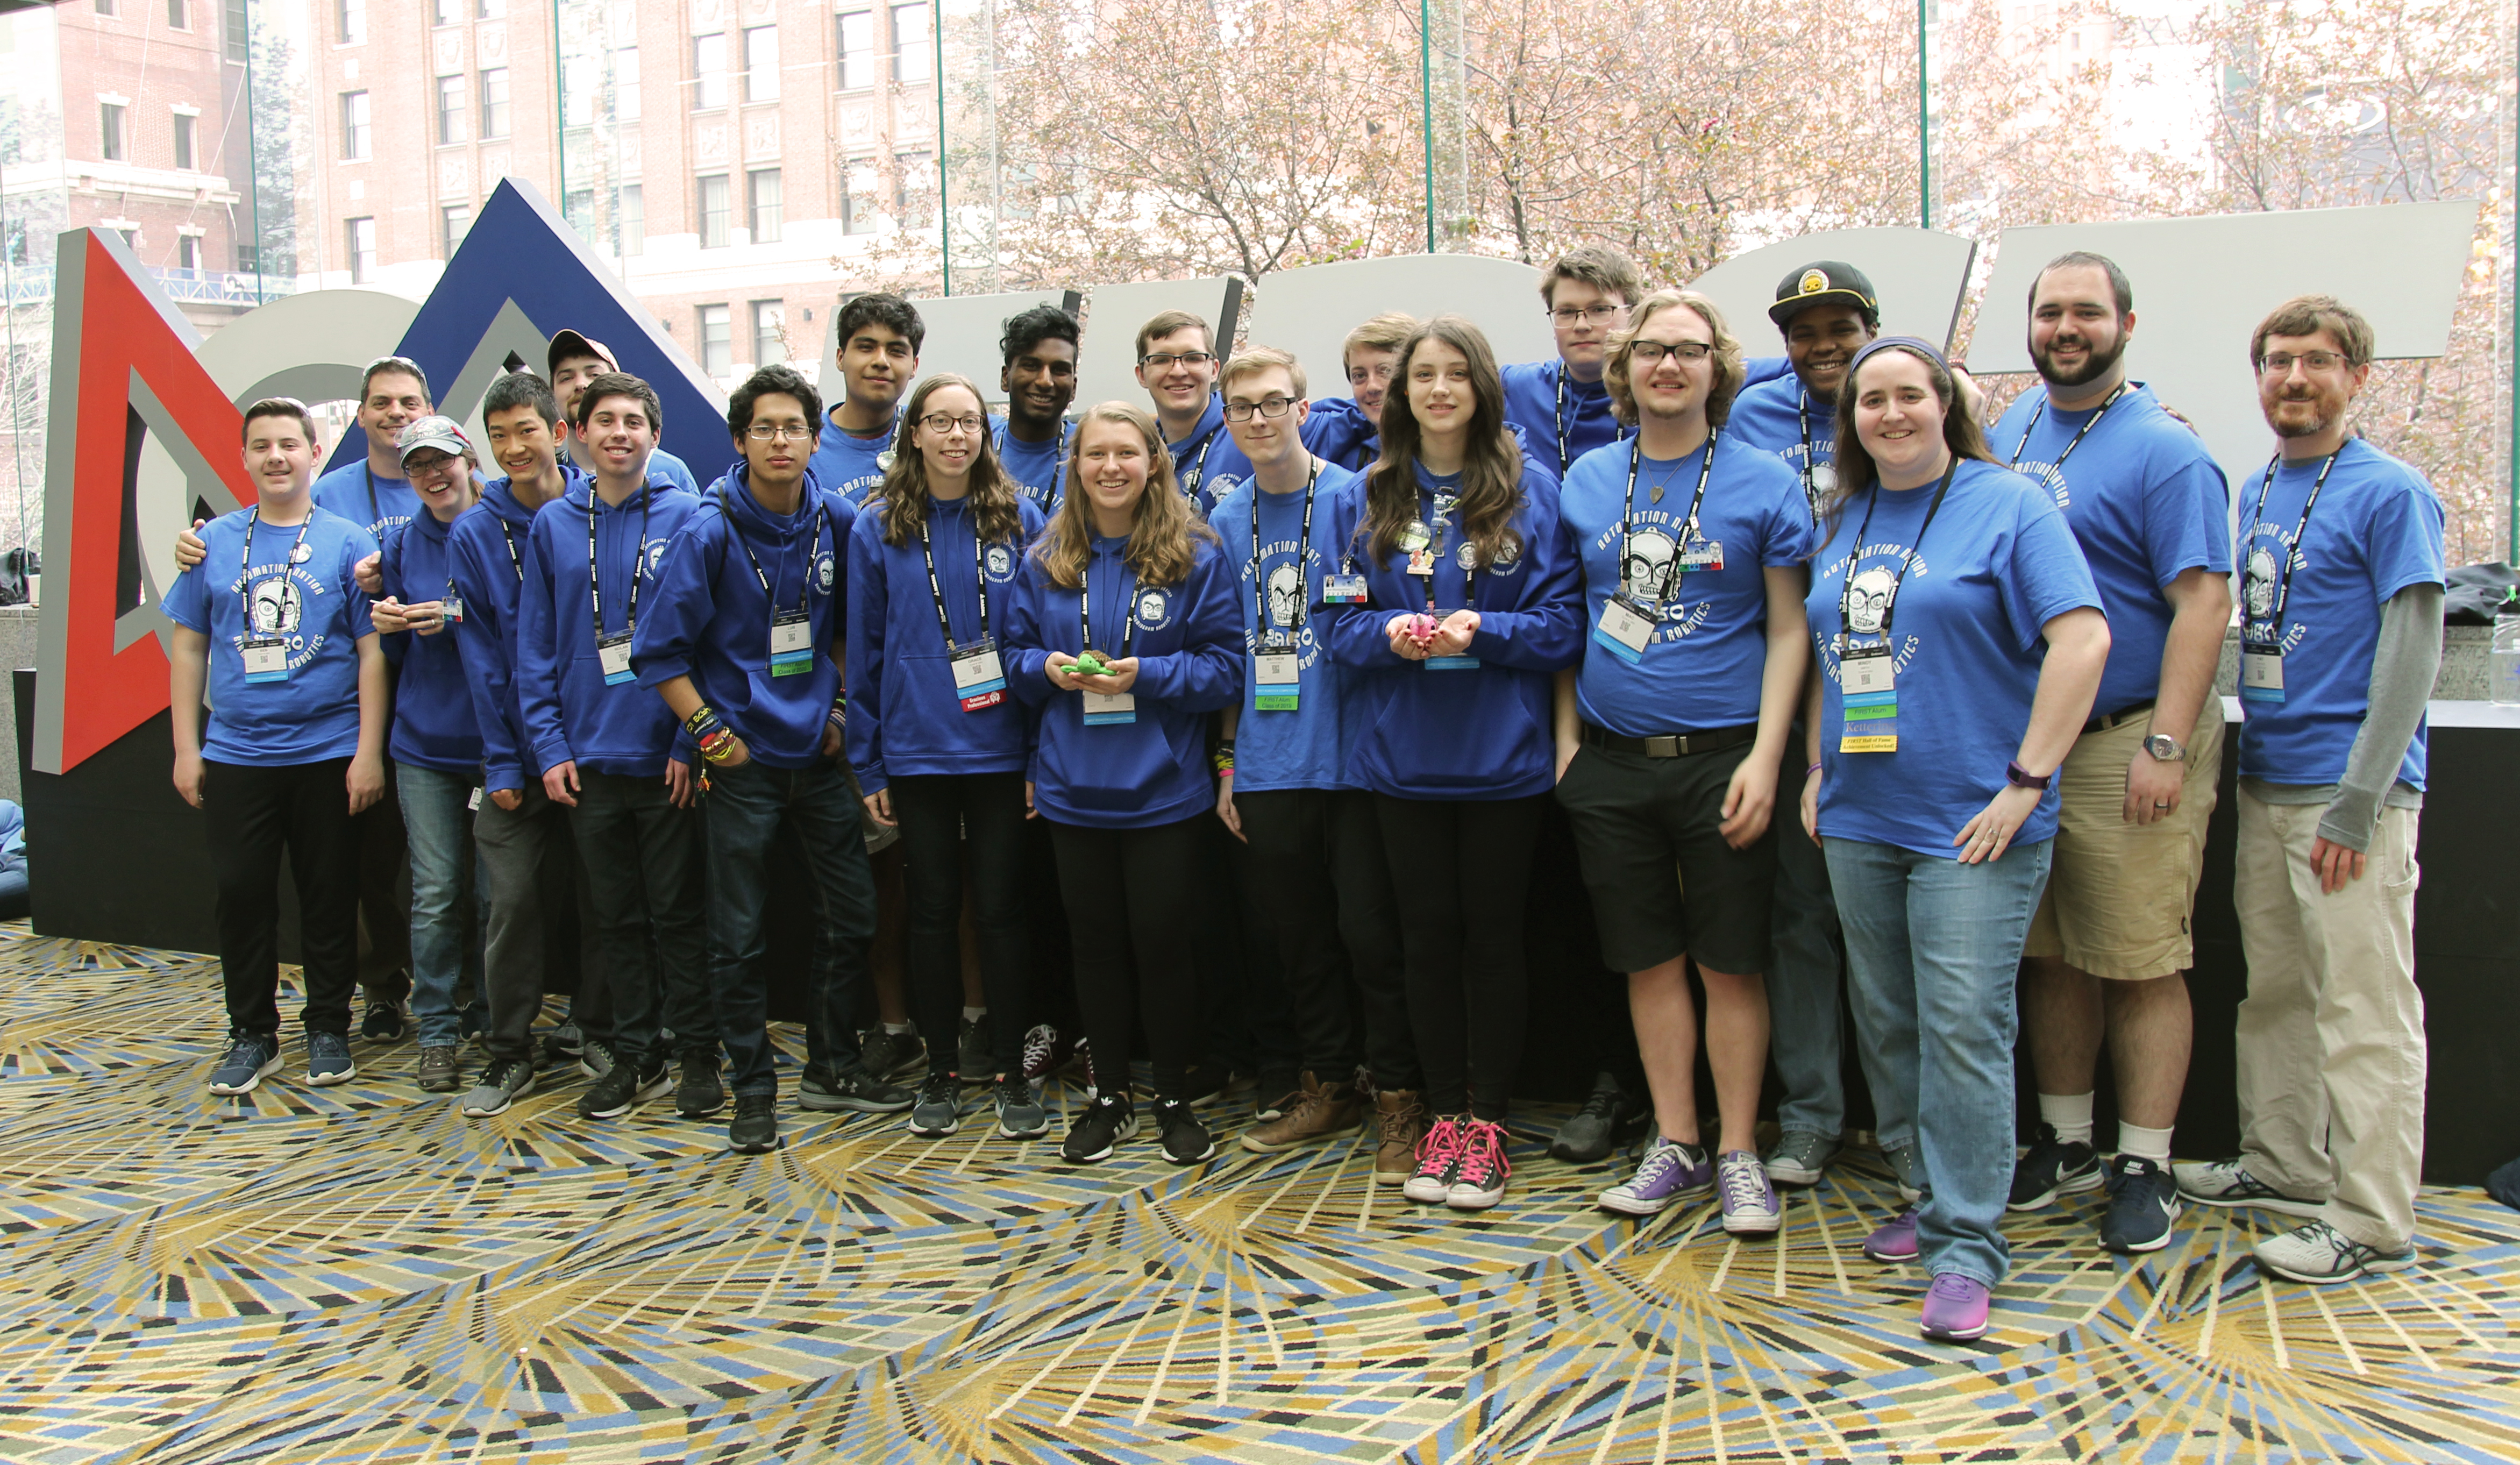 7ea8bbbe2a58 They competed at the FIRST Robotics World Championship, held at Cobo Hall  and Ford Field in Detroit, MI, April 25-27. The team was in the Carson  Division, ...